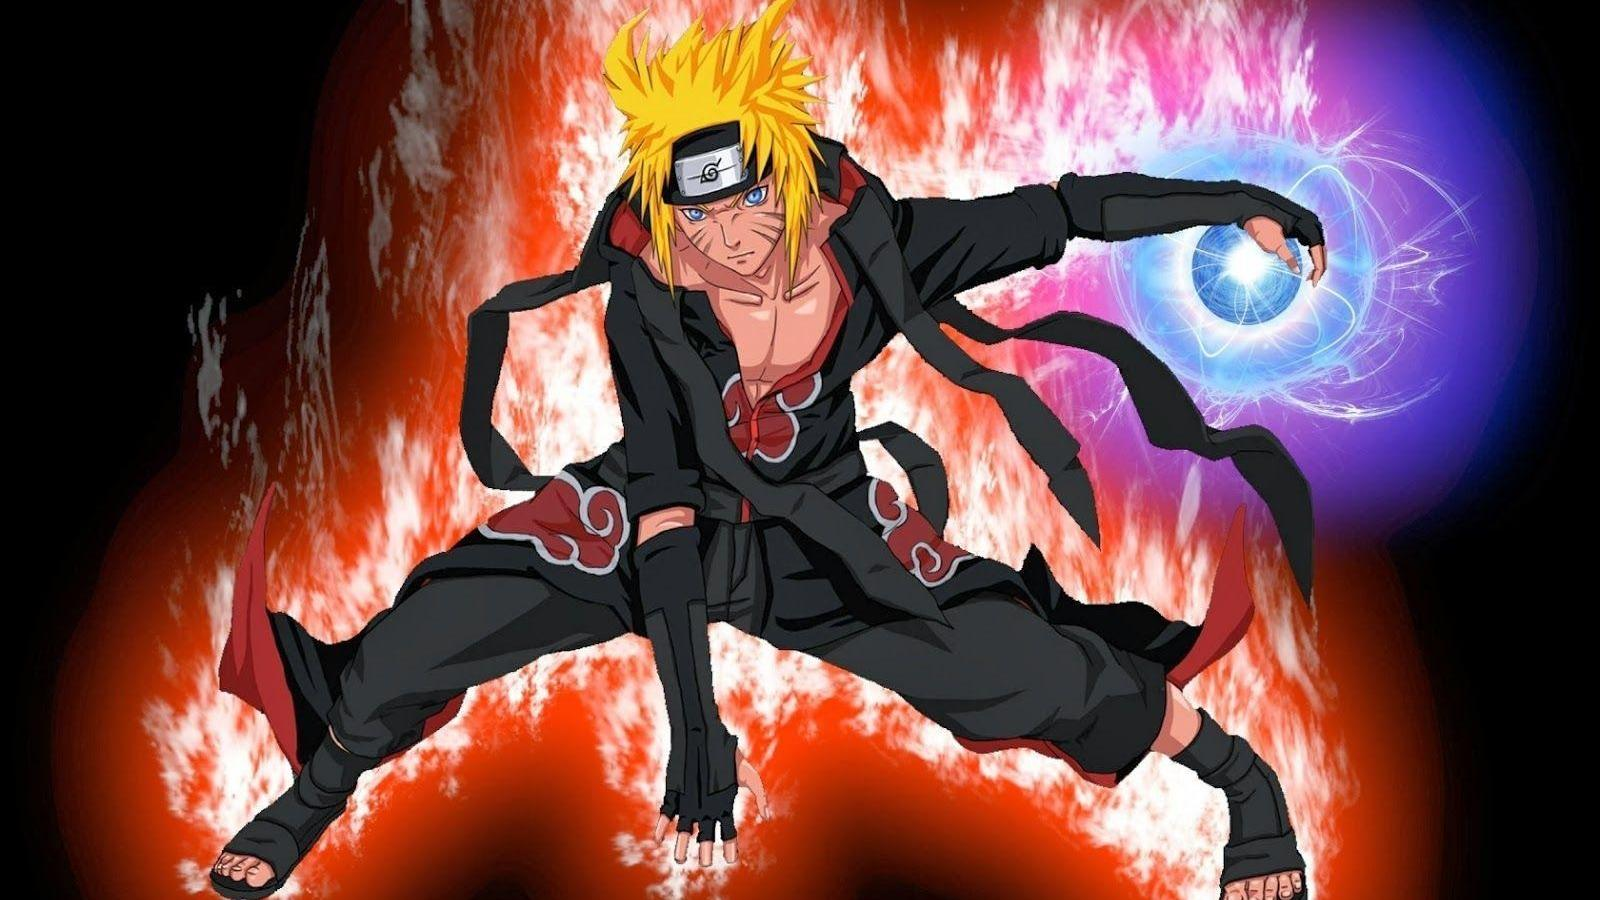 Naruto X Lil Uzi Vert Wallpapers Wallpaper Cave Originally referred to as like me by myron is a name that finds its origins from the greek μύρων. the name is derived from the term myrrh, which is a sweetly scented oil that is often. naruto x lil uzi vert wallpapers